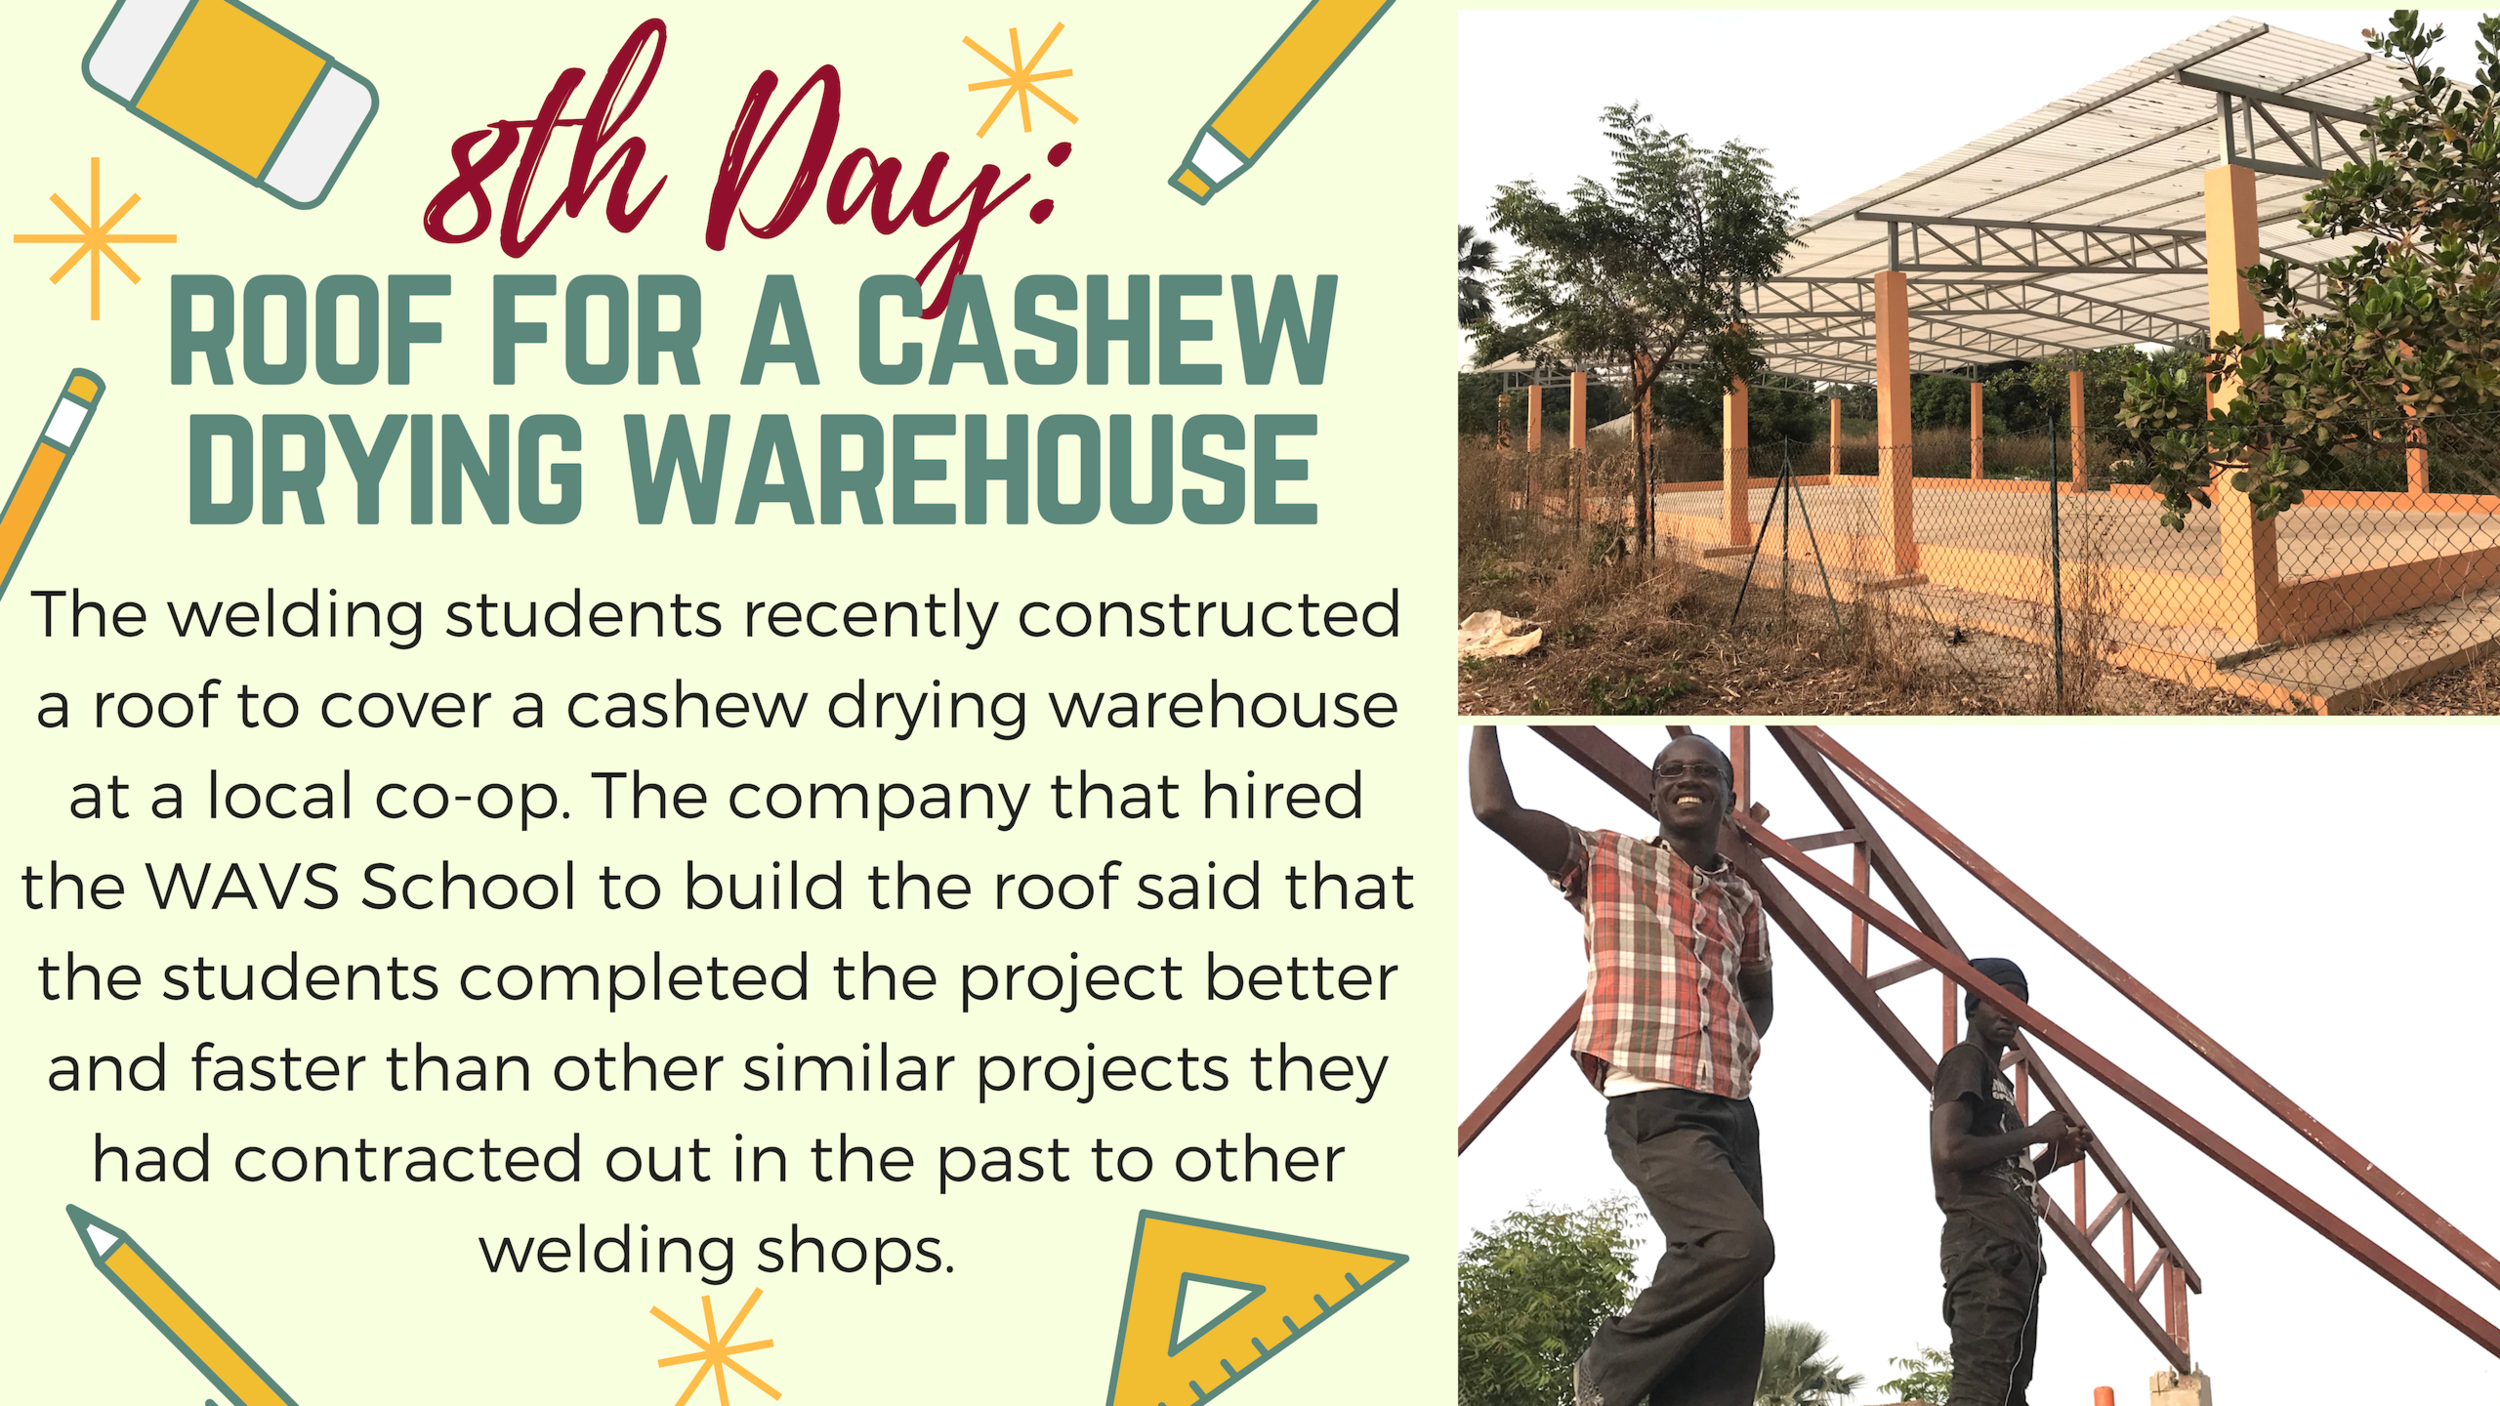 8th day roof for a cahsew drying warehouse.png